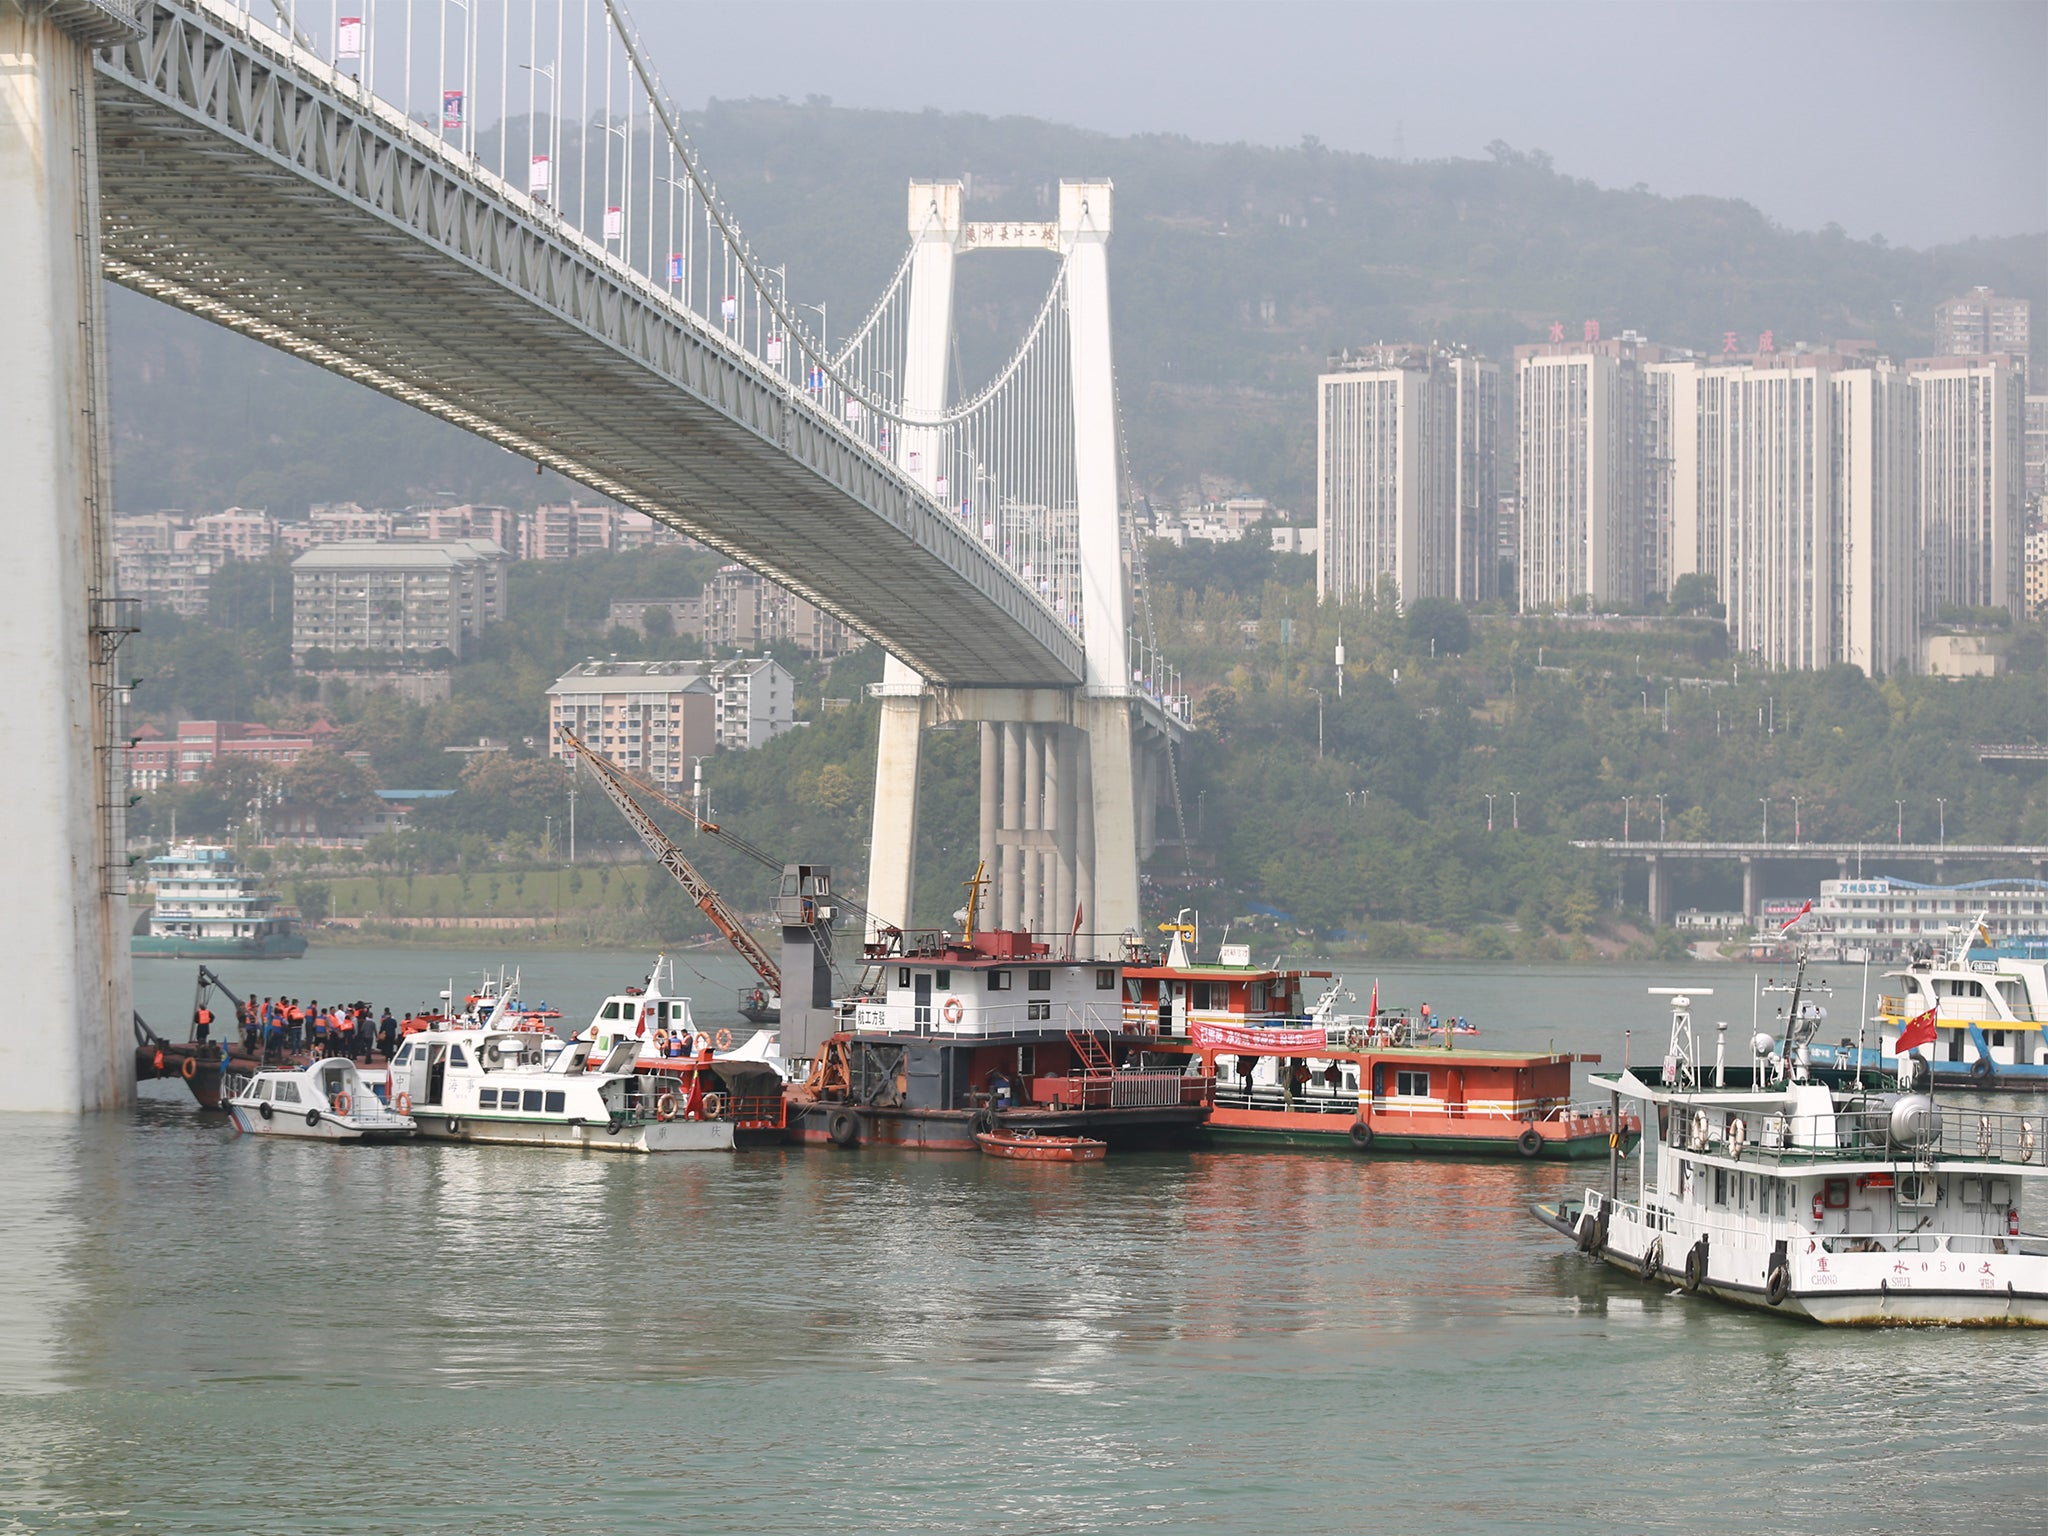 Bus plunged off bridge in China after passenger fought with